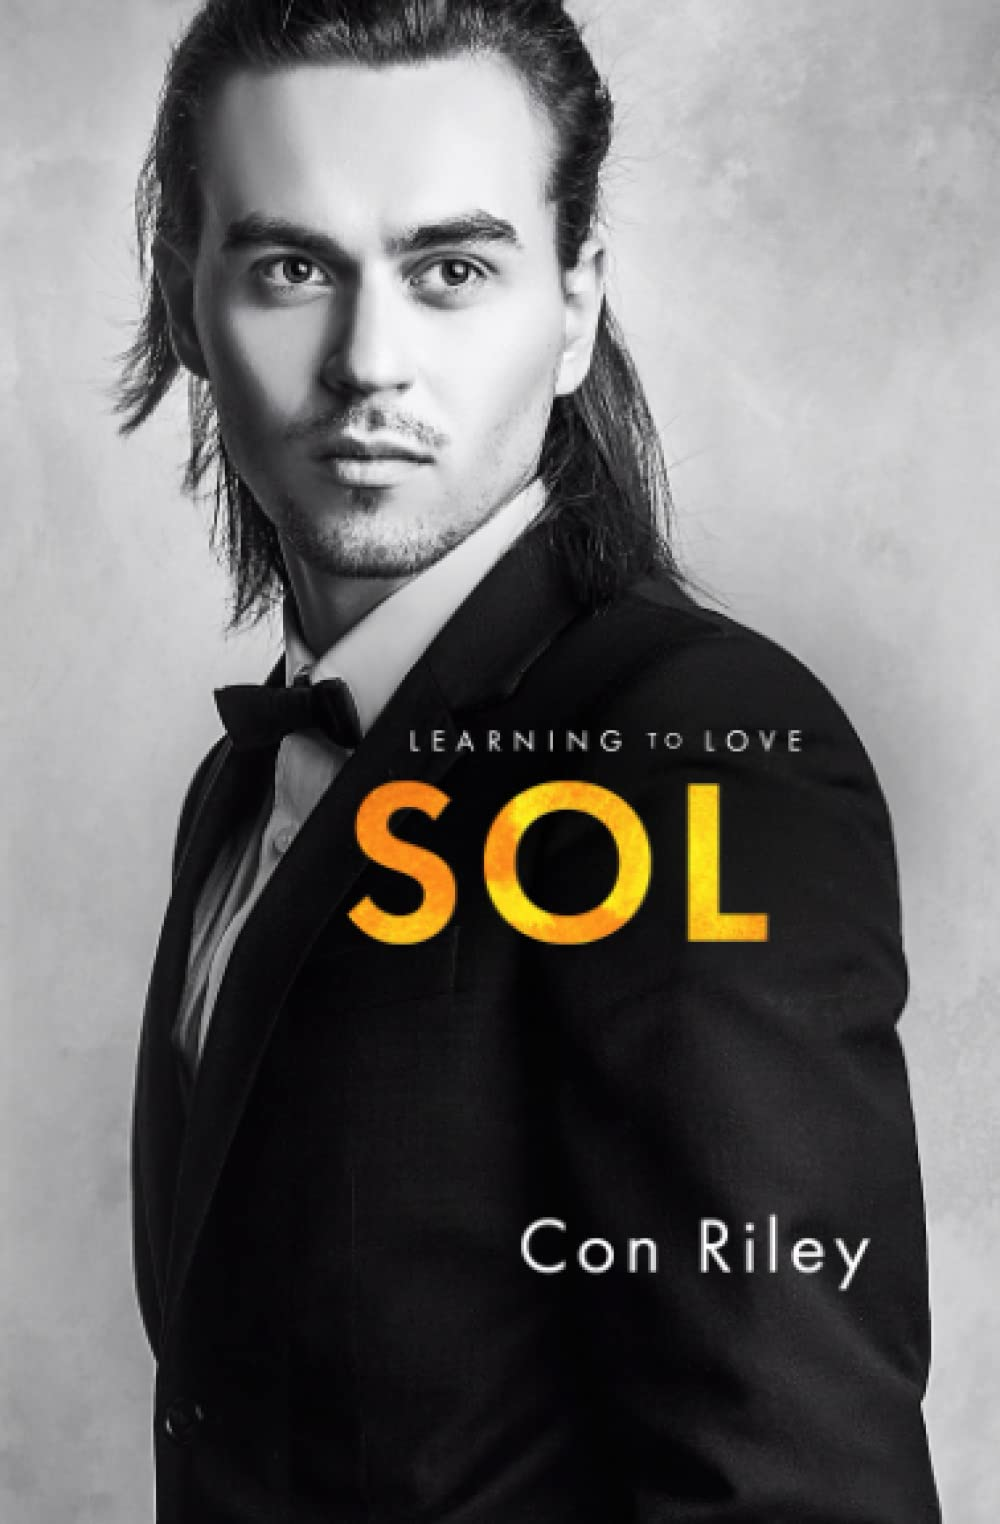 Learning to love  - Tome 2 : Sol de Con Riley 61zv7h10